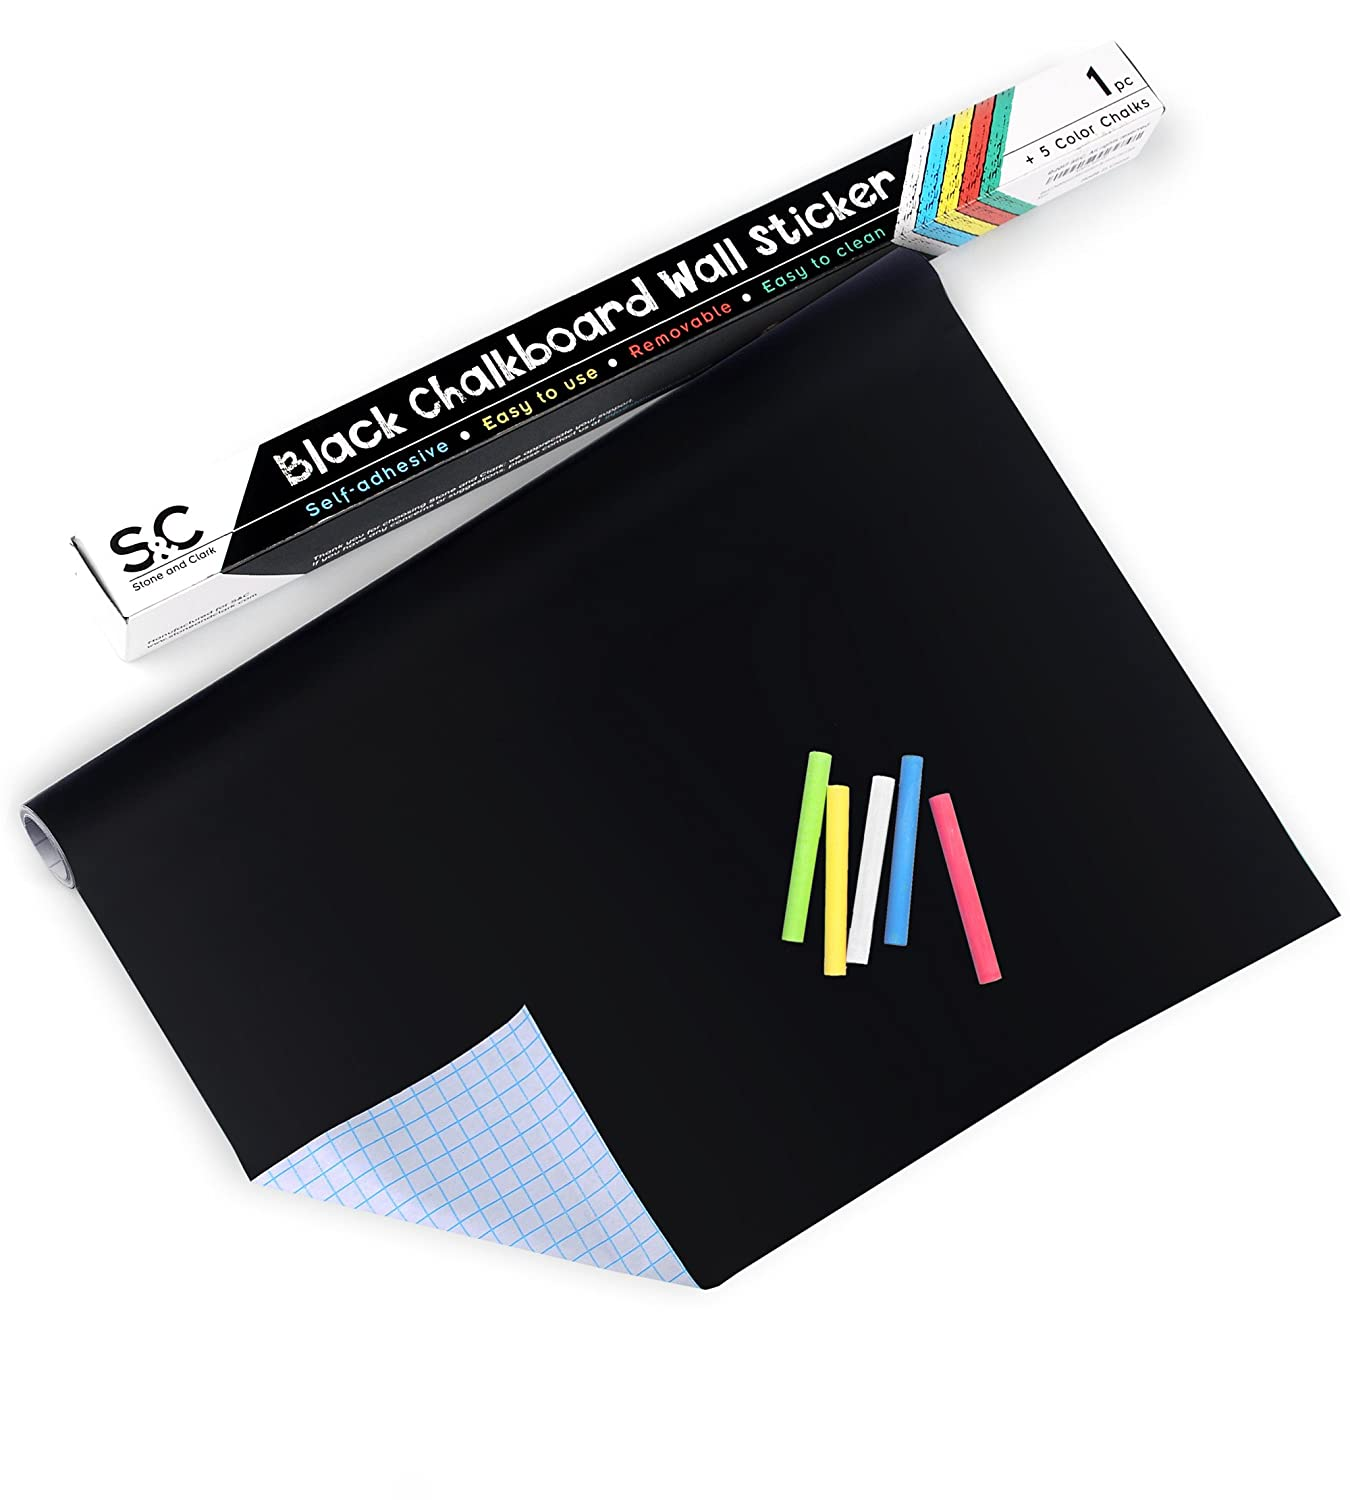 Chalkboard Stickers & Blackboard Paper with 5 Colored Chalks. Self-Adhesive Chalkboard Sticky Paper for DIY Projects. Easy to Apply, Use & Clean Black Roll Vinyl Board Stickers (Black)